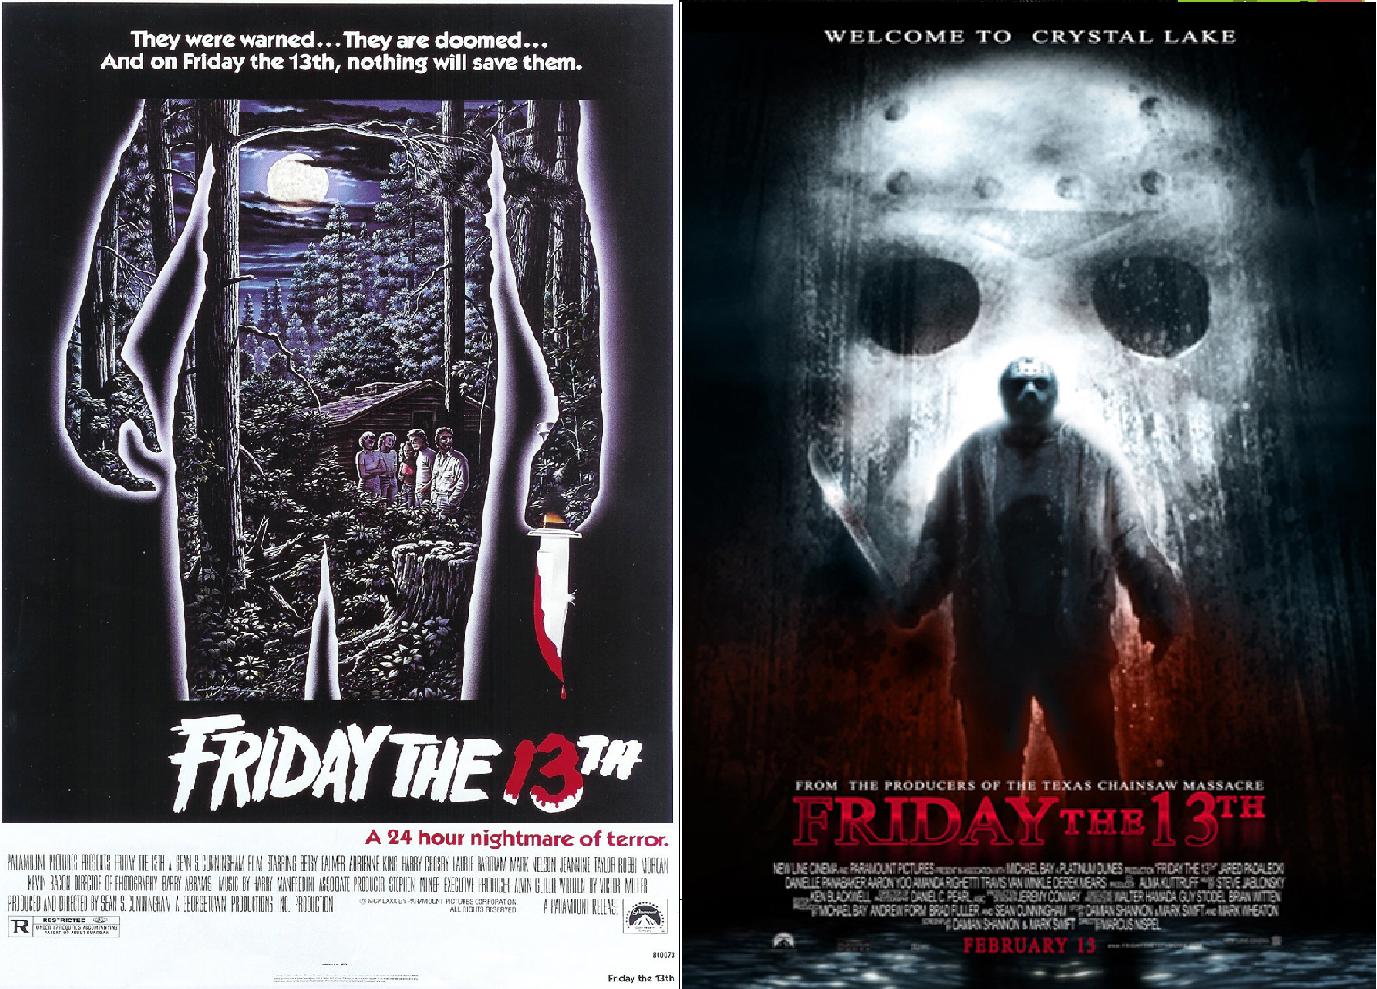 friday the 13th original movie poster and remake movie